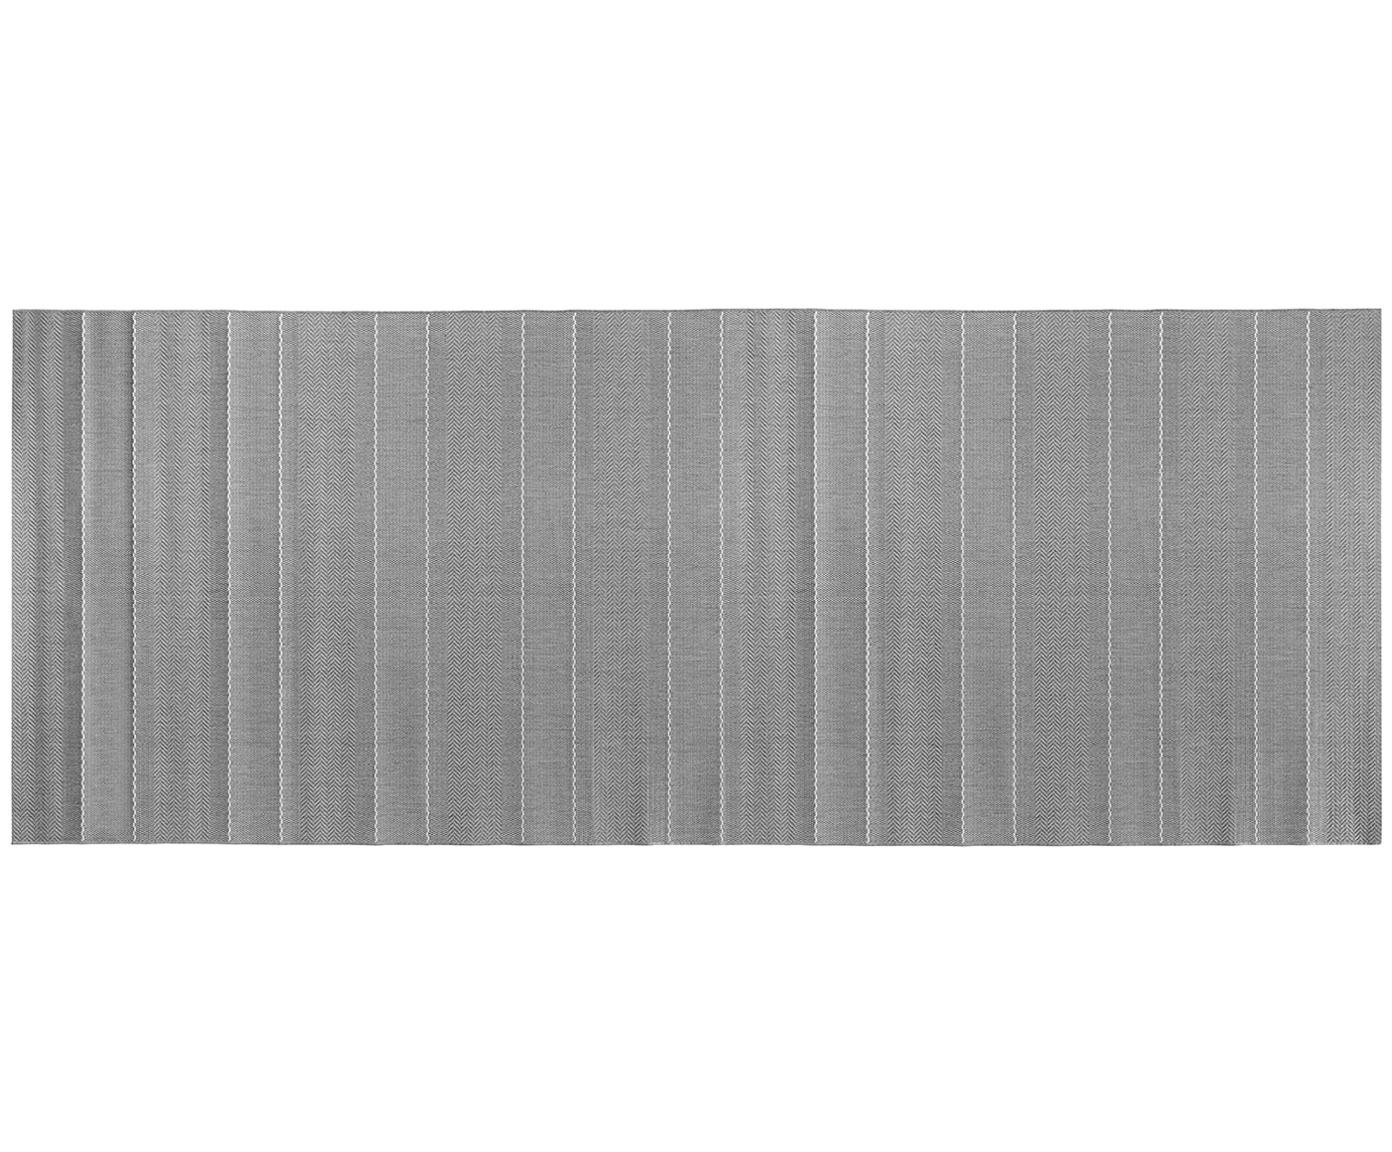 In- & Outdoor-Läufer Sunshine in Grau, Grau, Beige, 80 x 200 cm